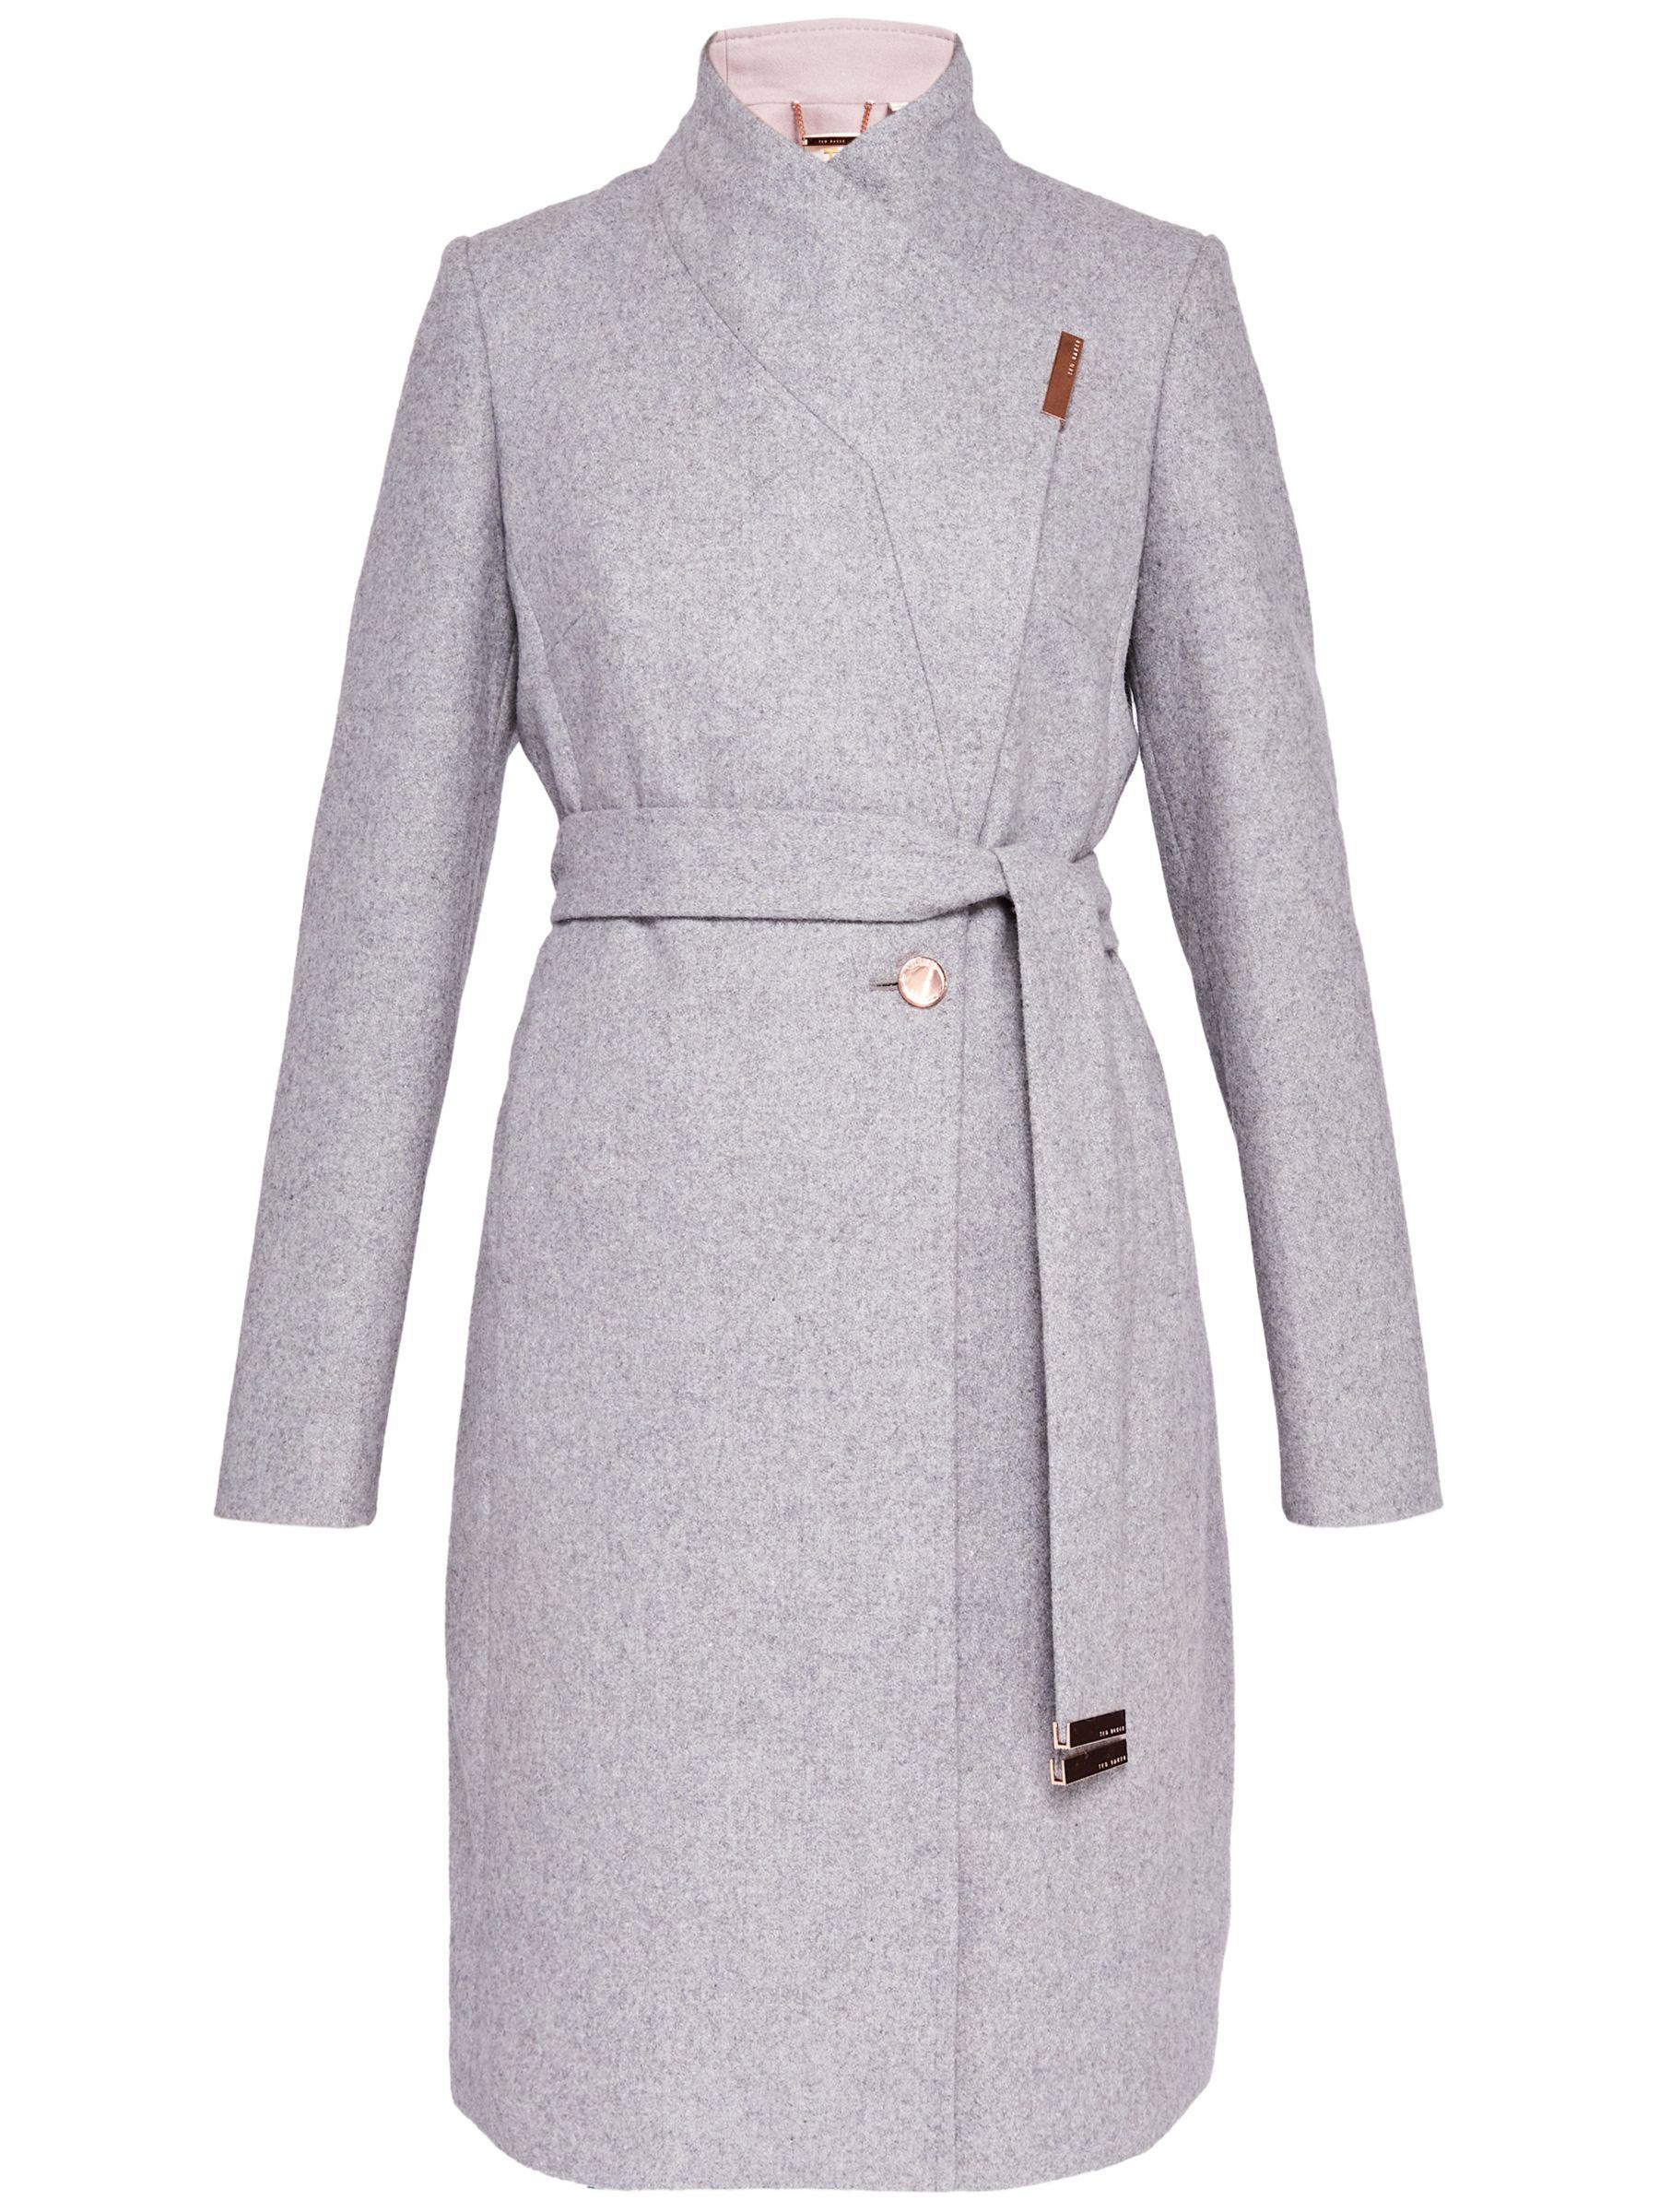 49f400c6073a Ted Baker Khera Wool Cashmere Blend Wrap Coat in Gray - Lyst